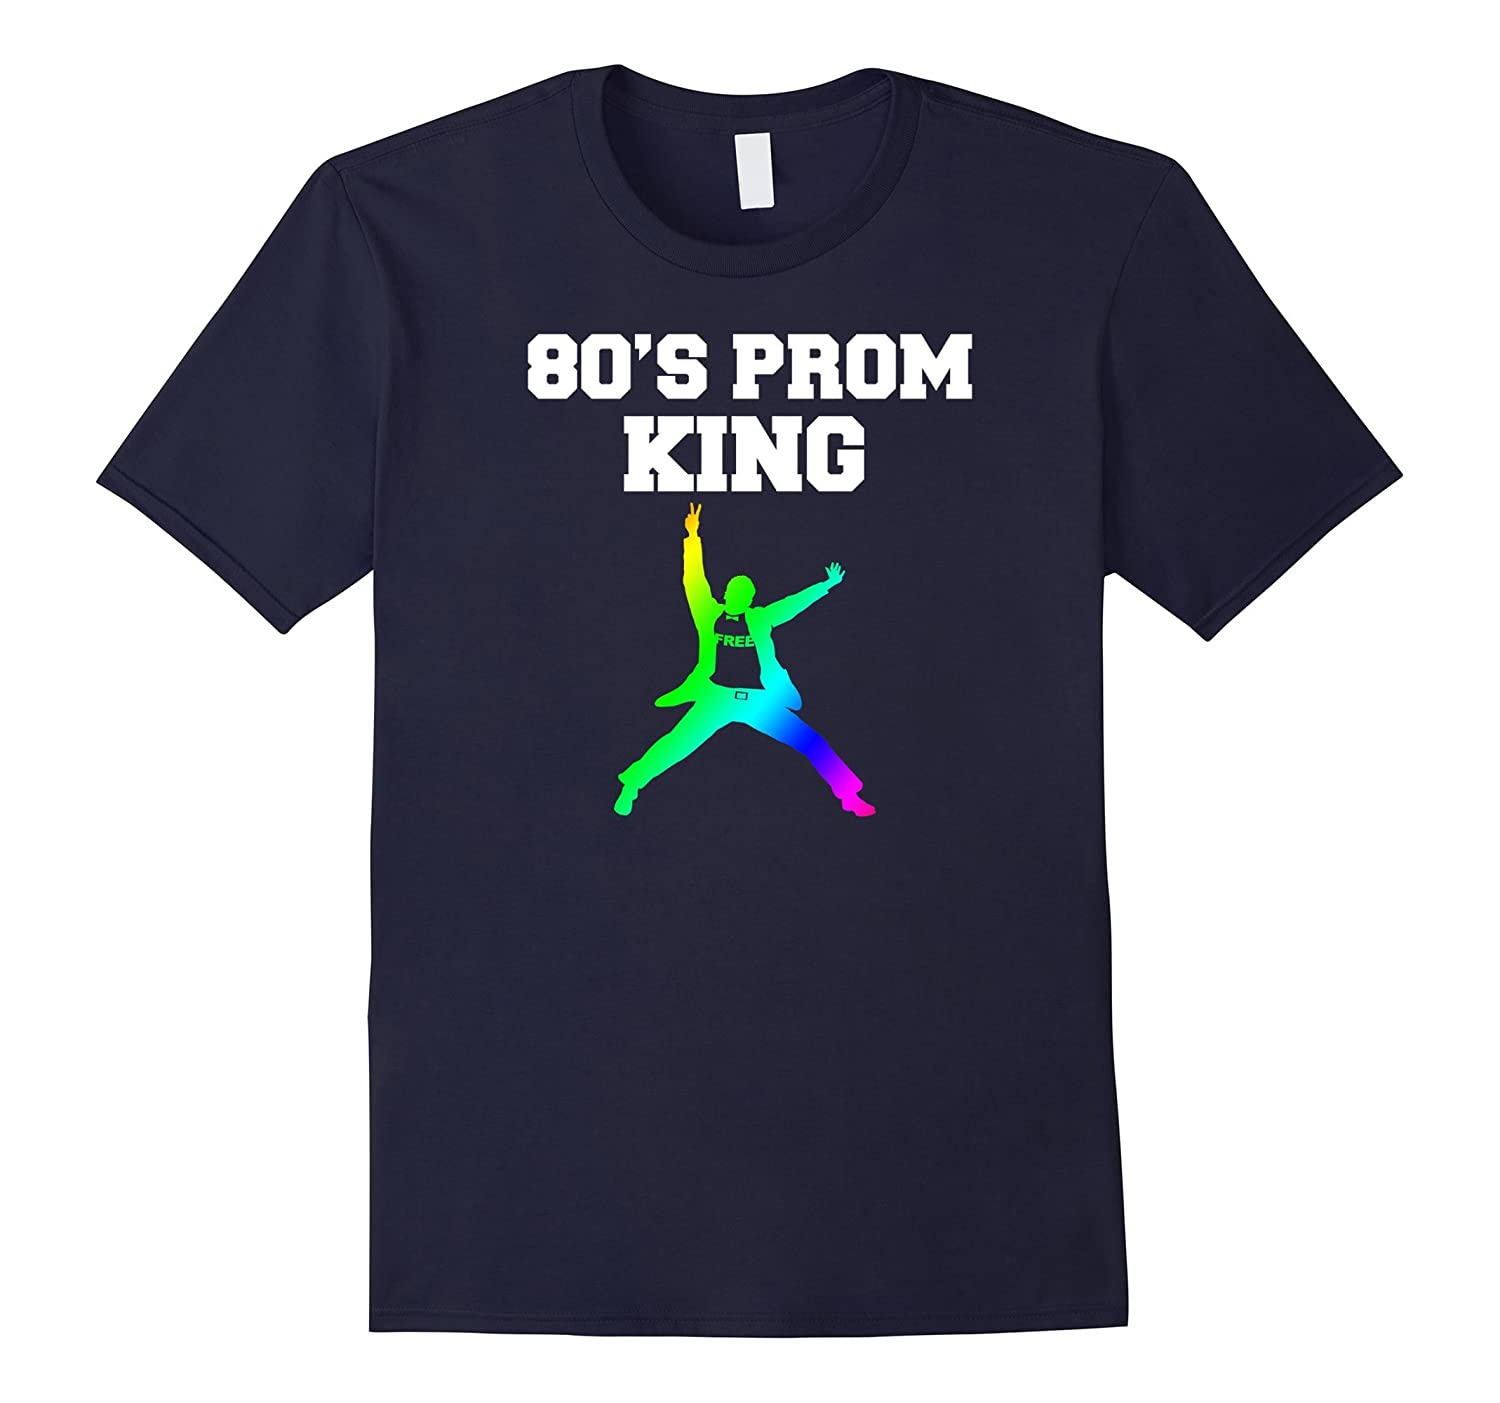 Mens 80s Prom King Eighties Party Shirt for 80s Theme Party-TD